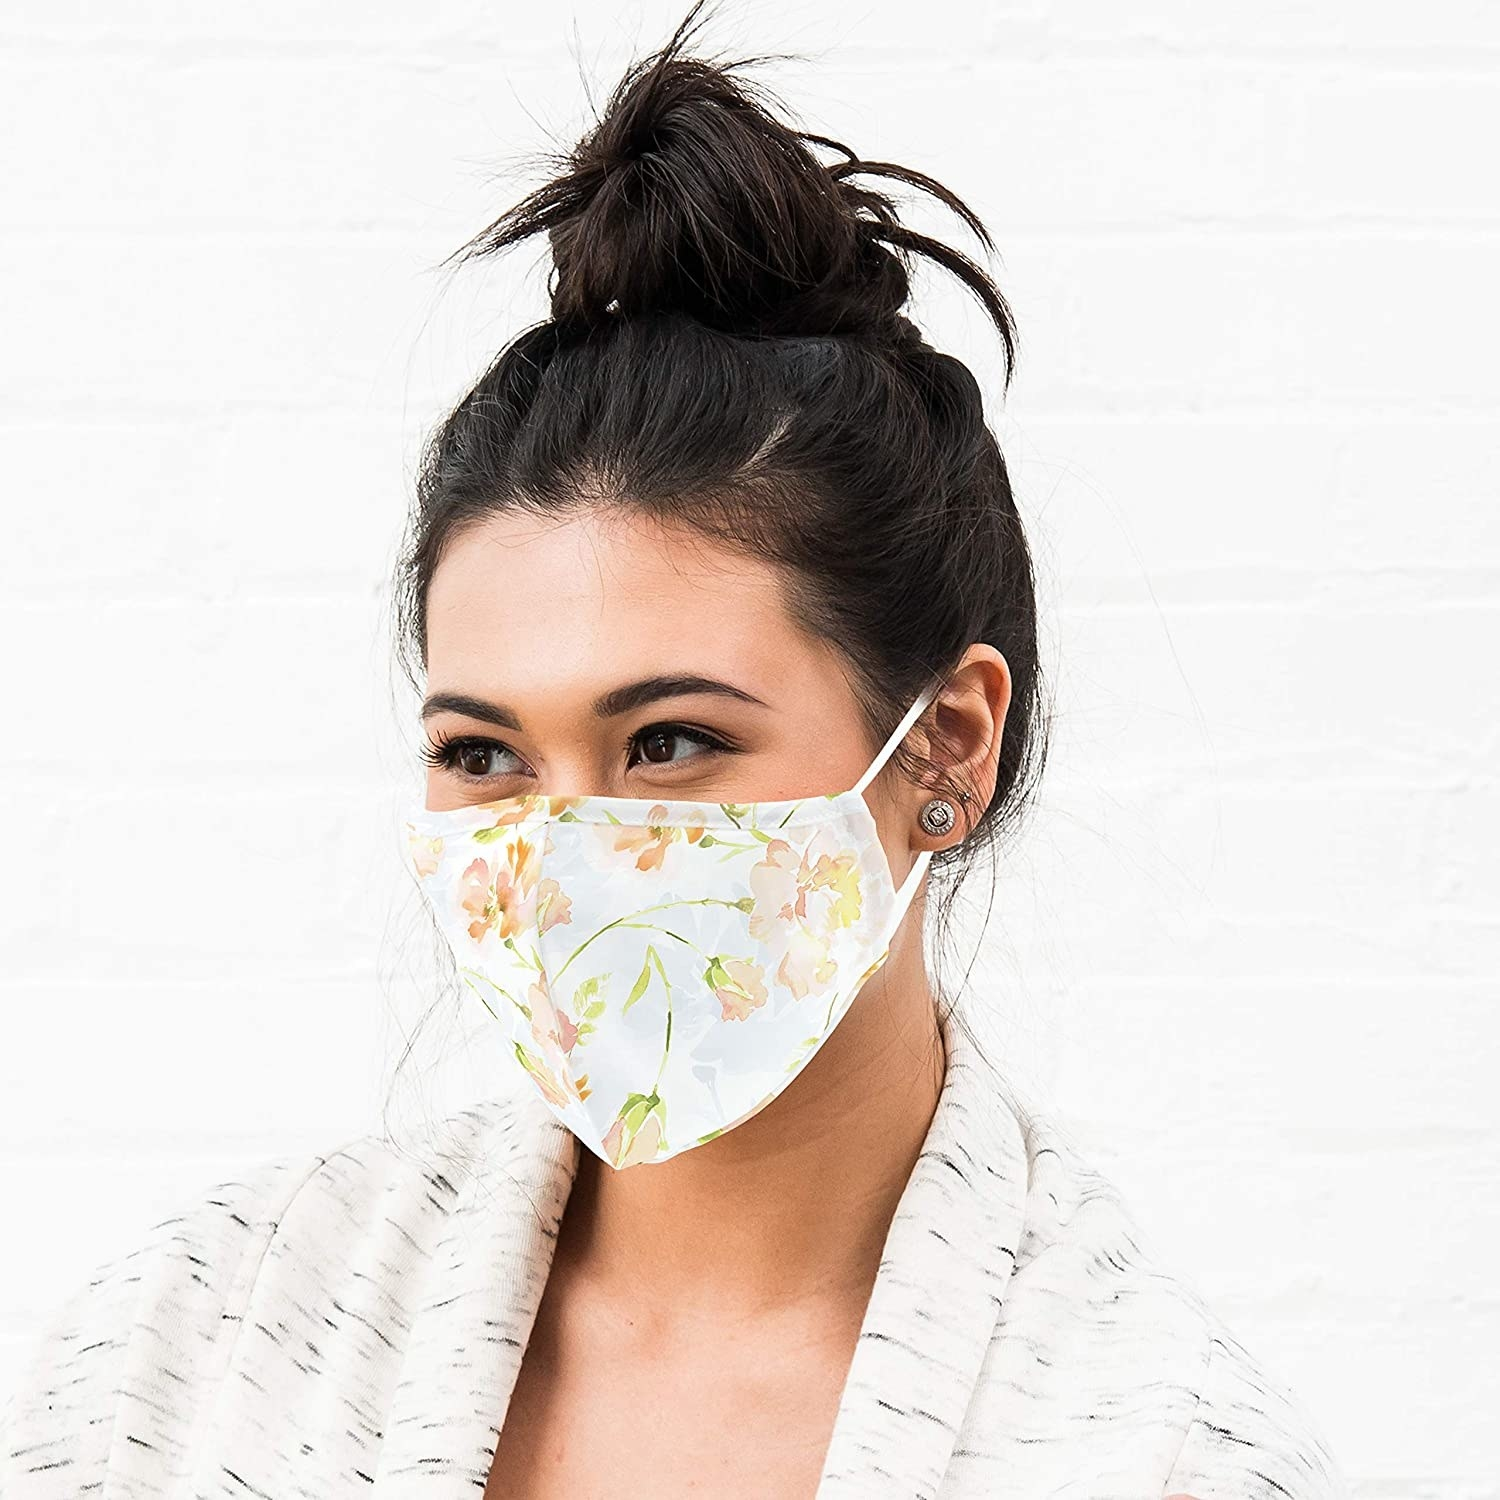 A person wears a face mask with elasticized bands on the ears